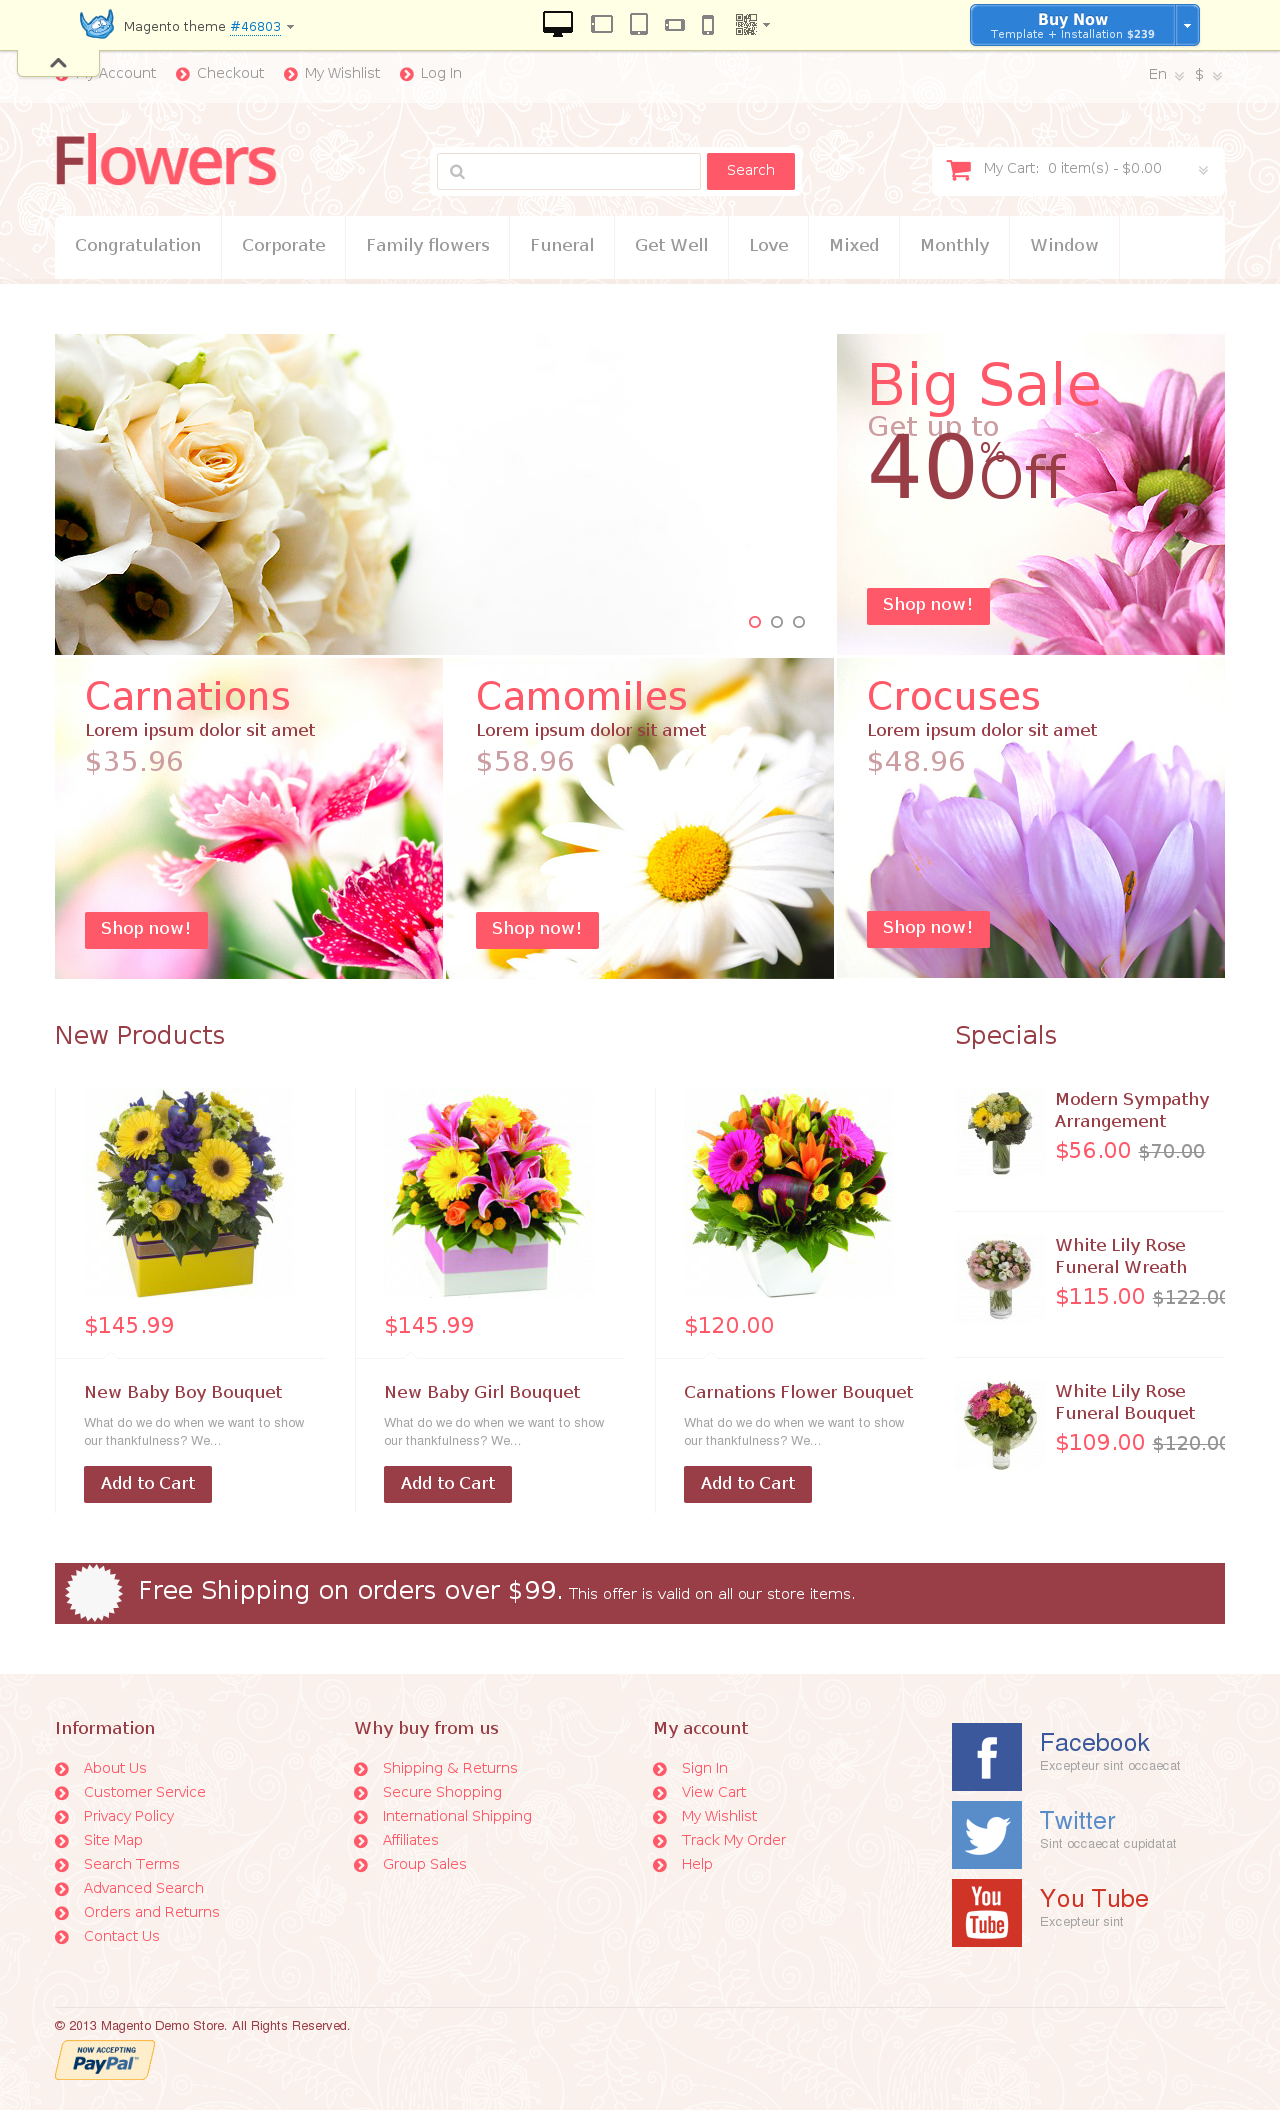 Flowers For Any Occasion Magento Theme #46803